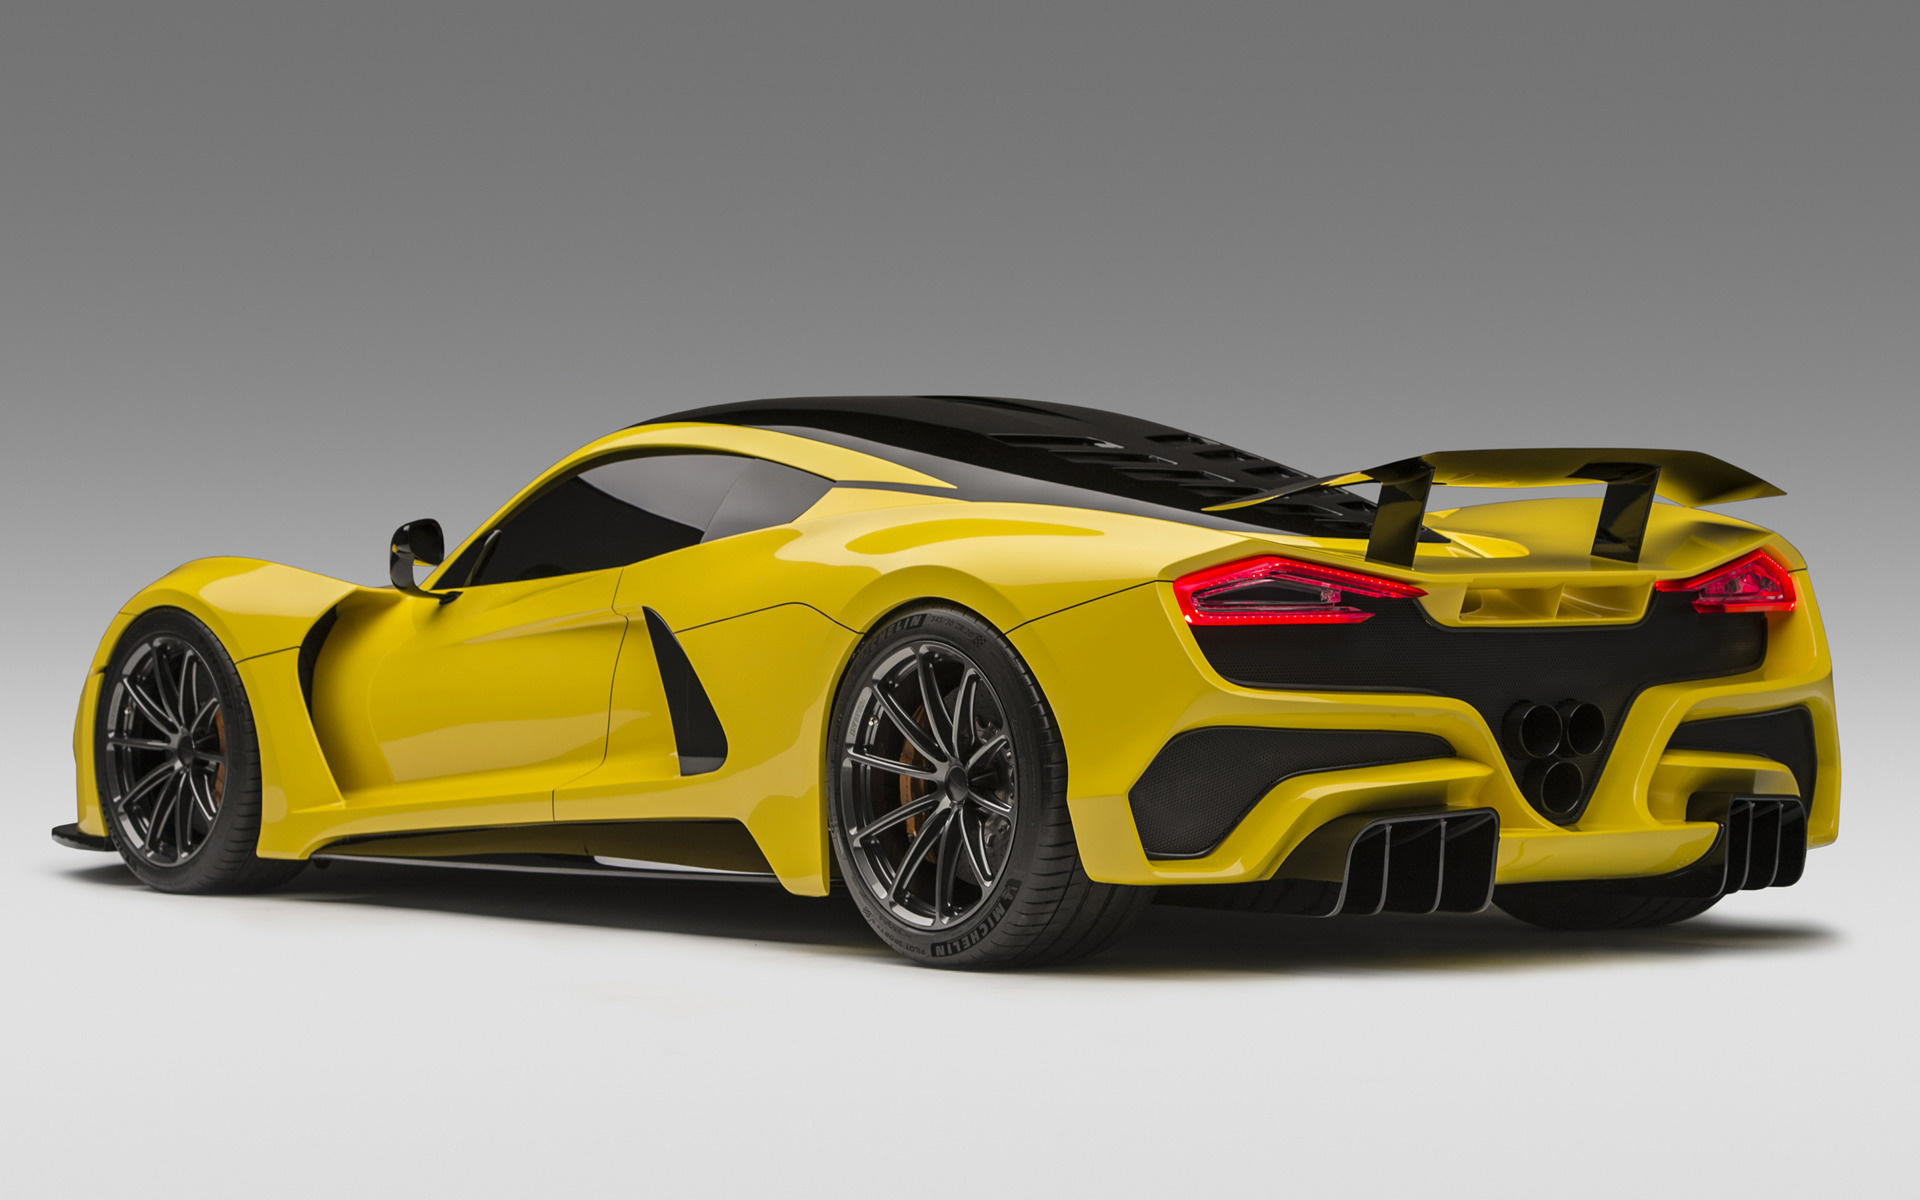 Hennessey Venom F5 (2019) Wallpapers and HD Images - Car Pixel